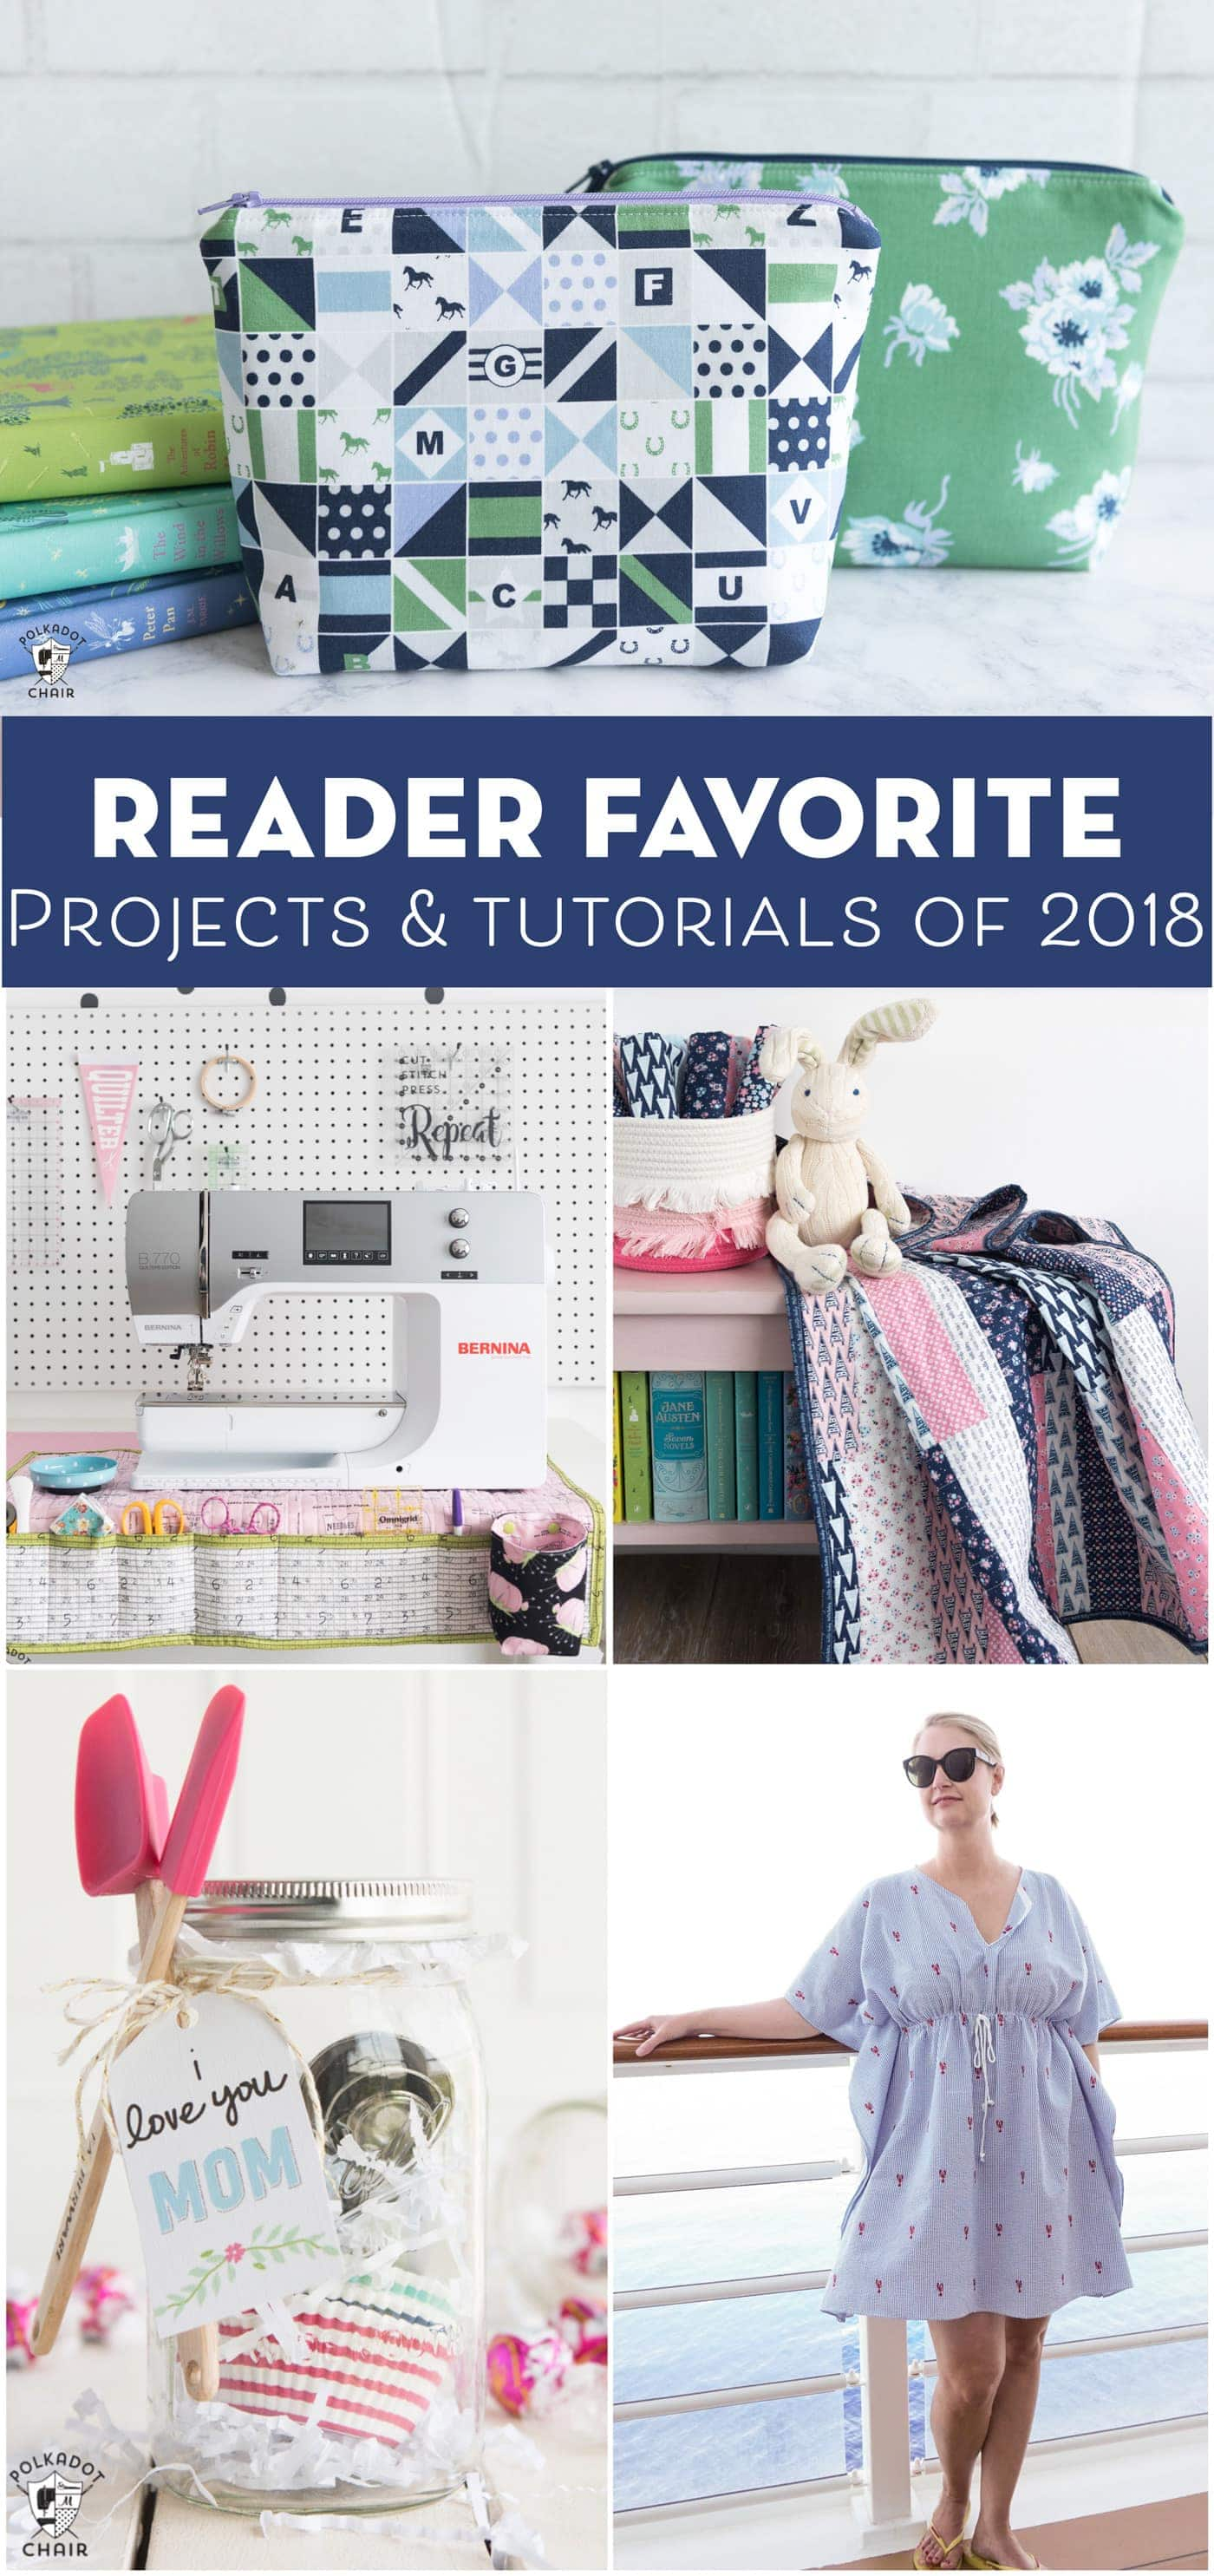 The most popular sewing, quilting and DIY projects of 2018. So many cute ideas for things to make #sewingprojects #quiltprojects